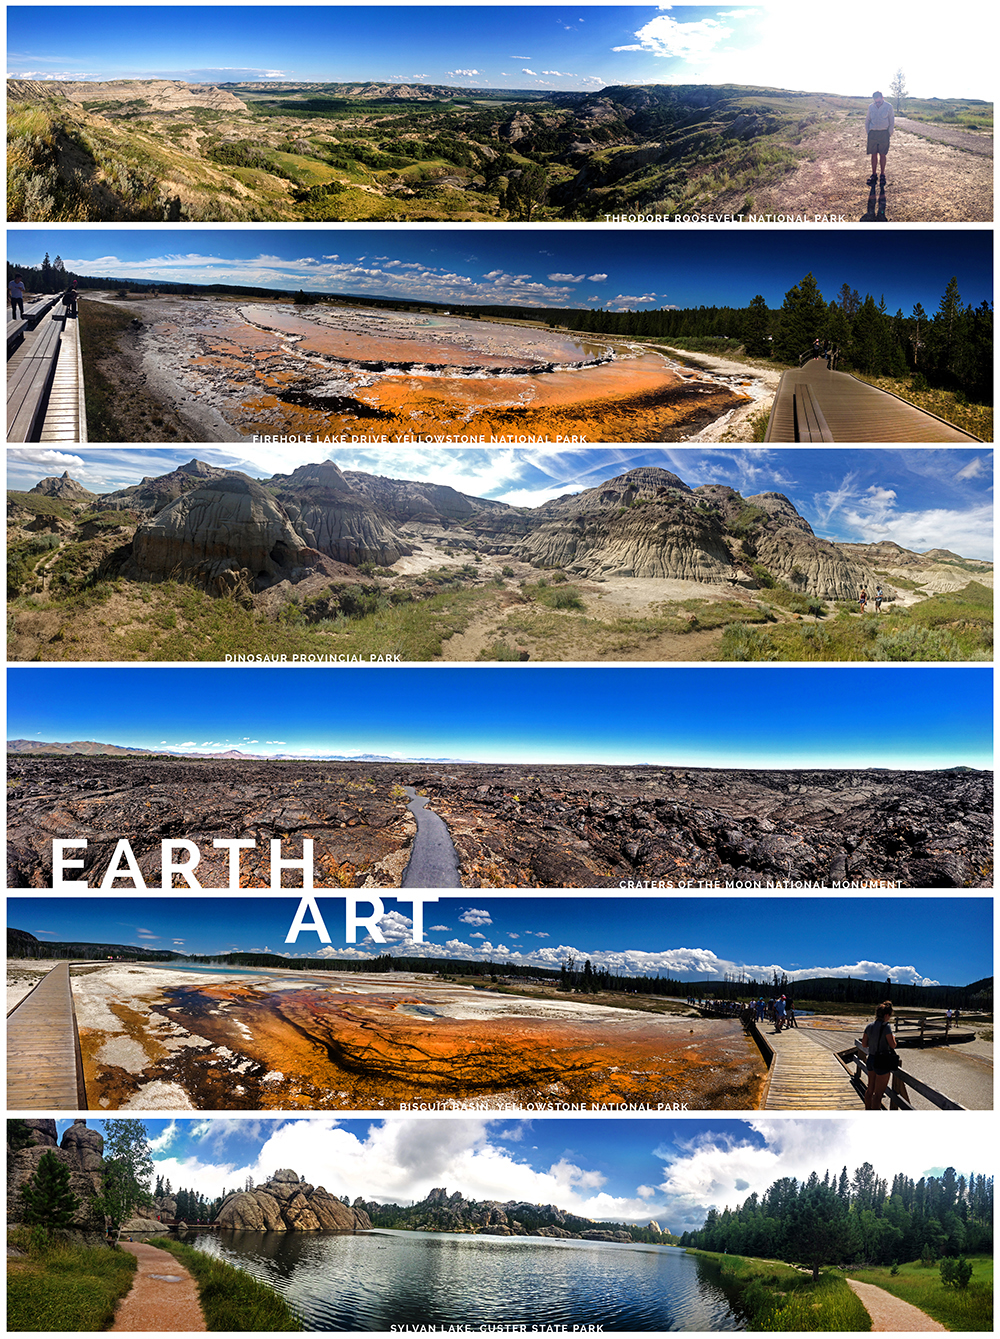 American Southwest 2016 Panorama Poster_03_01